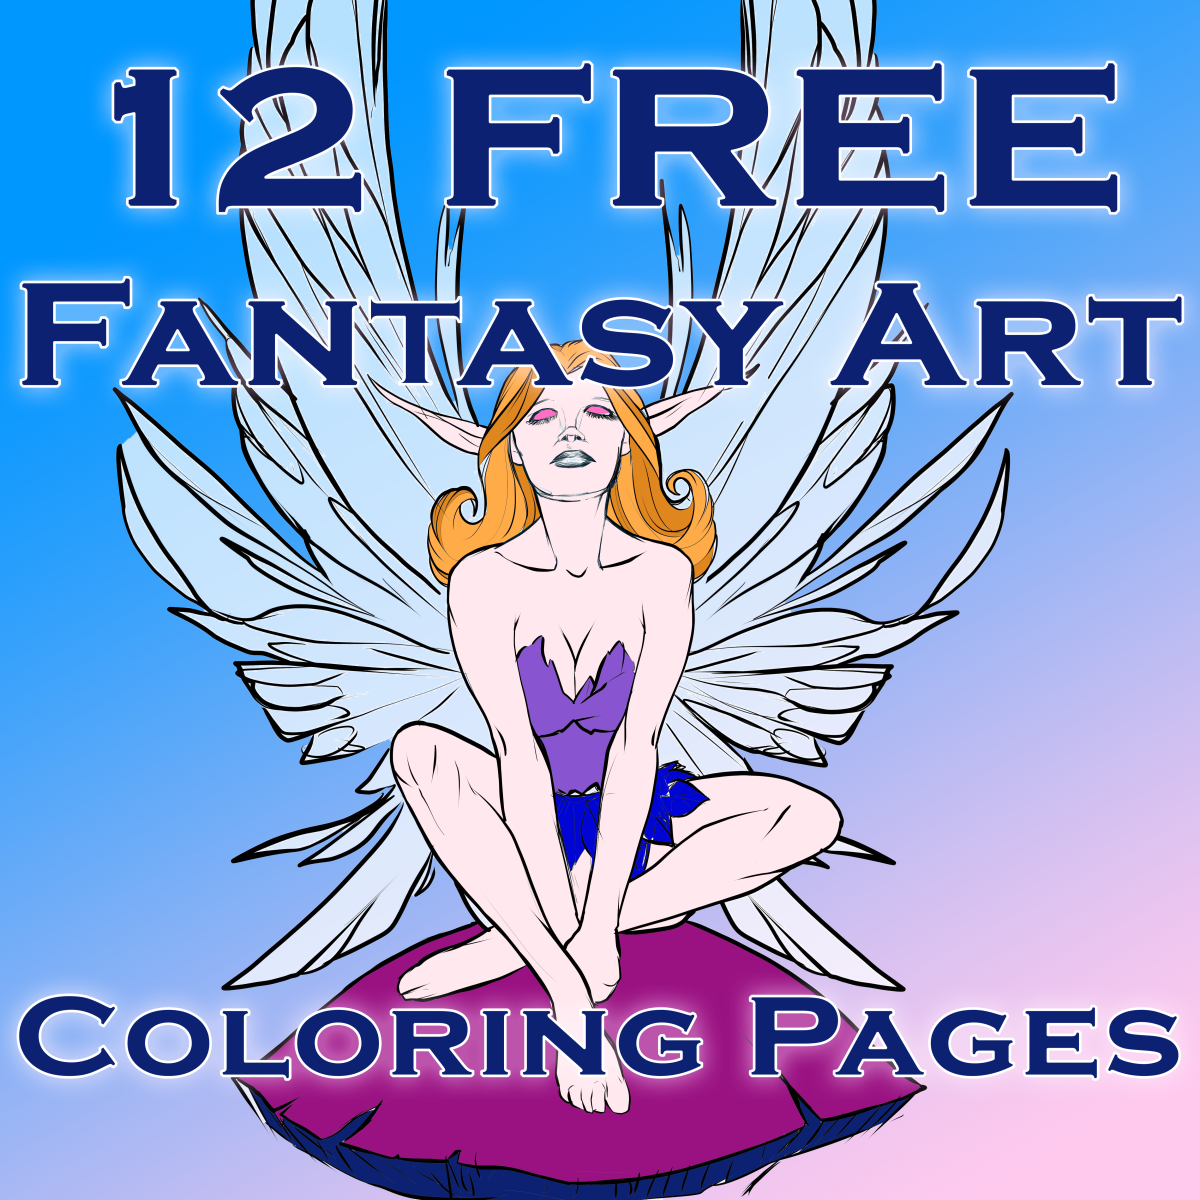 Fantasy Art Coloring Pages: 12 Free Printable Coloring Pages for Kids, Teens, and Adults